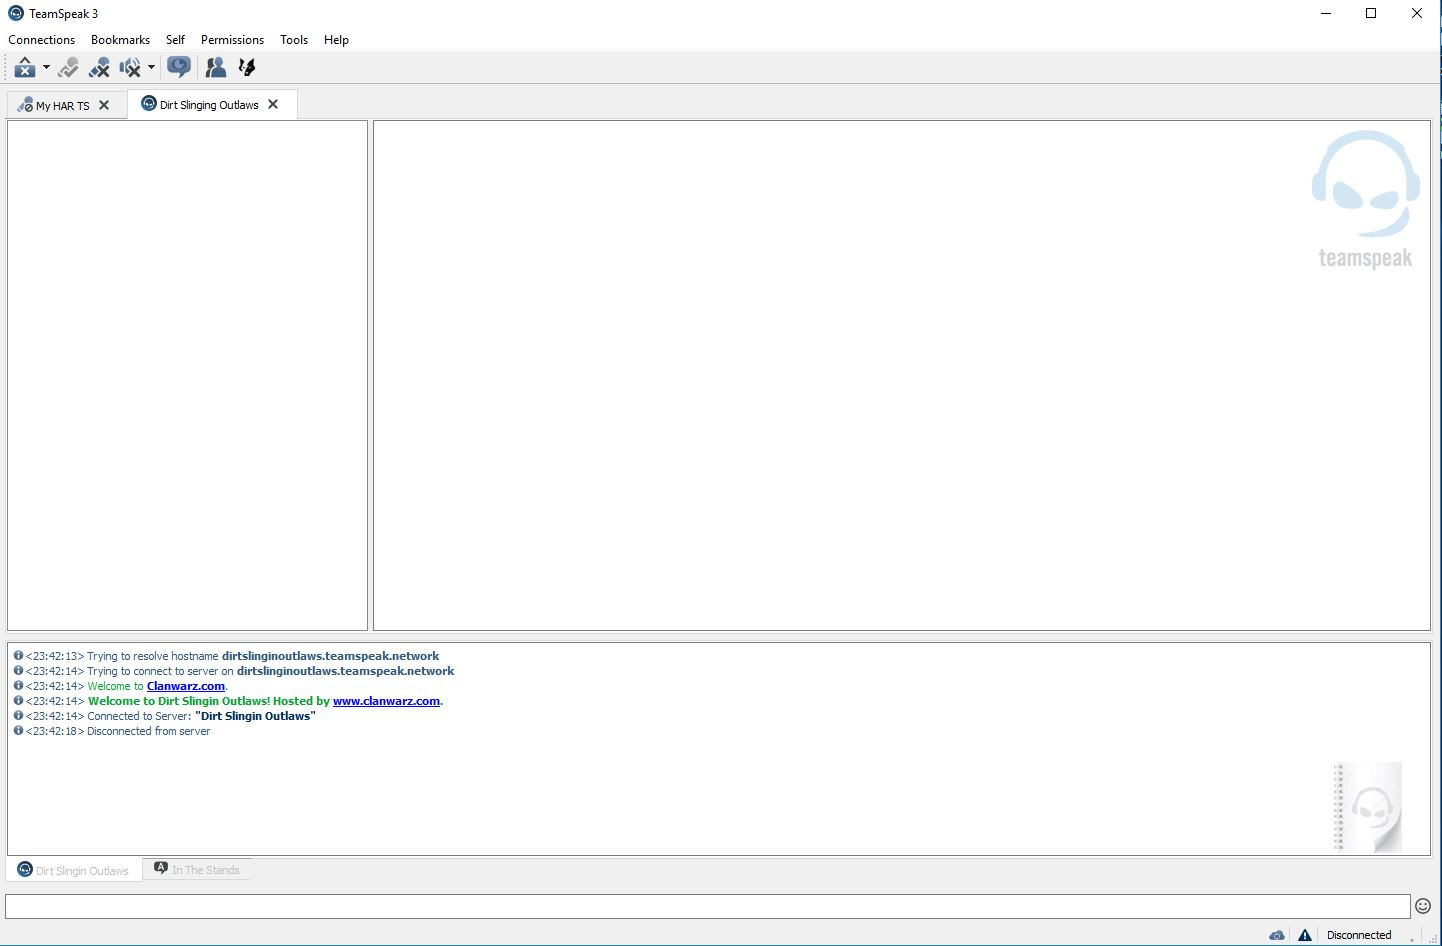 Teamspeak Initially Opened, The tabs should say new tab.